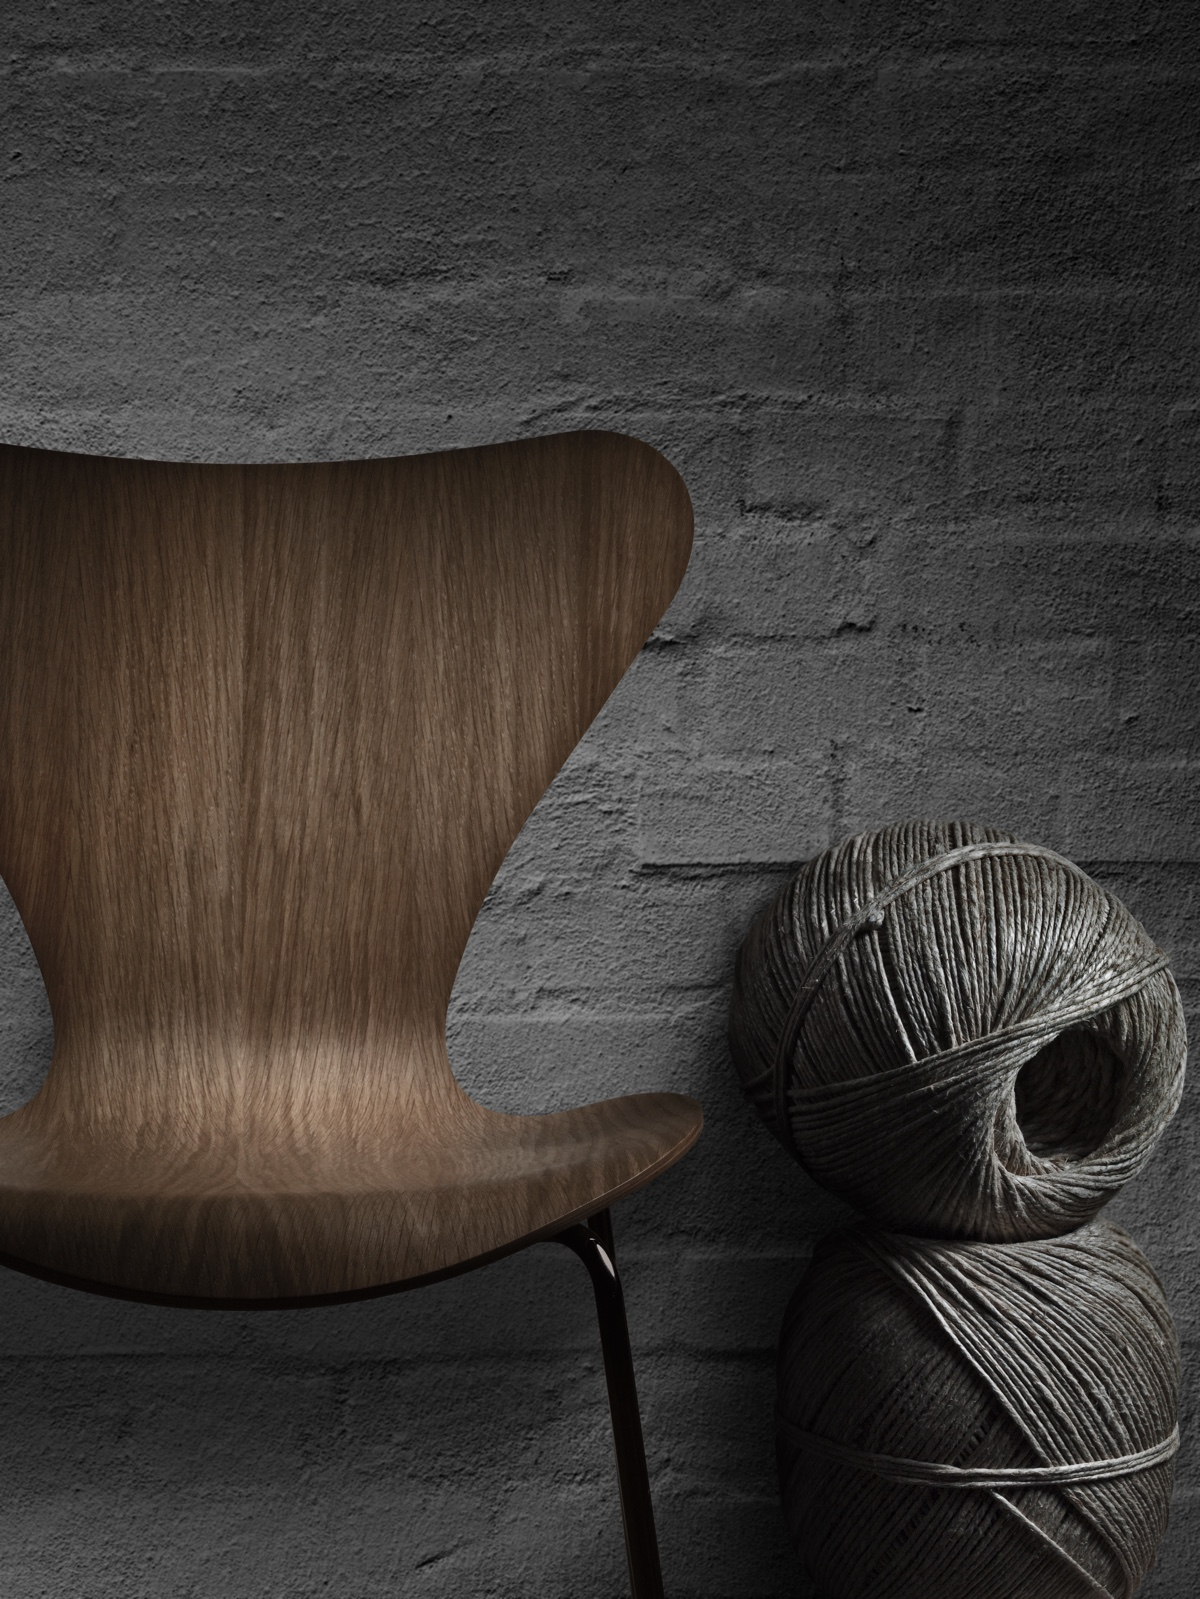 The Series 7™ chair's iconic profile. Shown in natural oak.